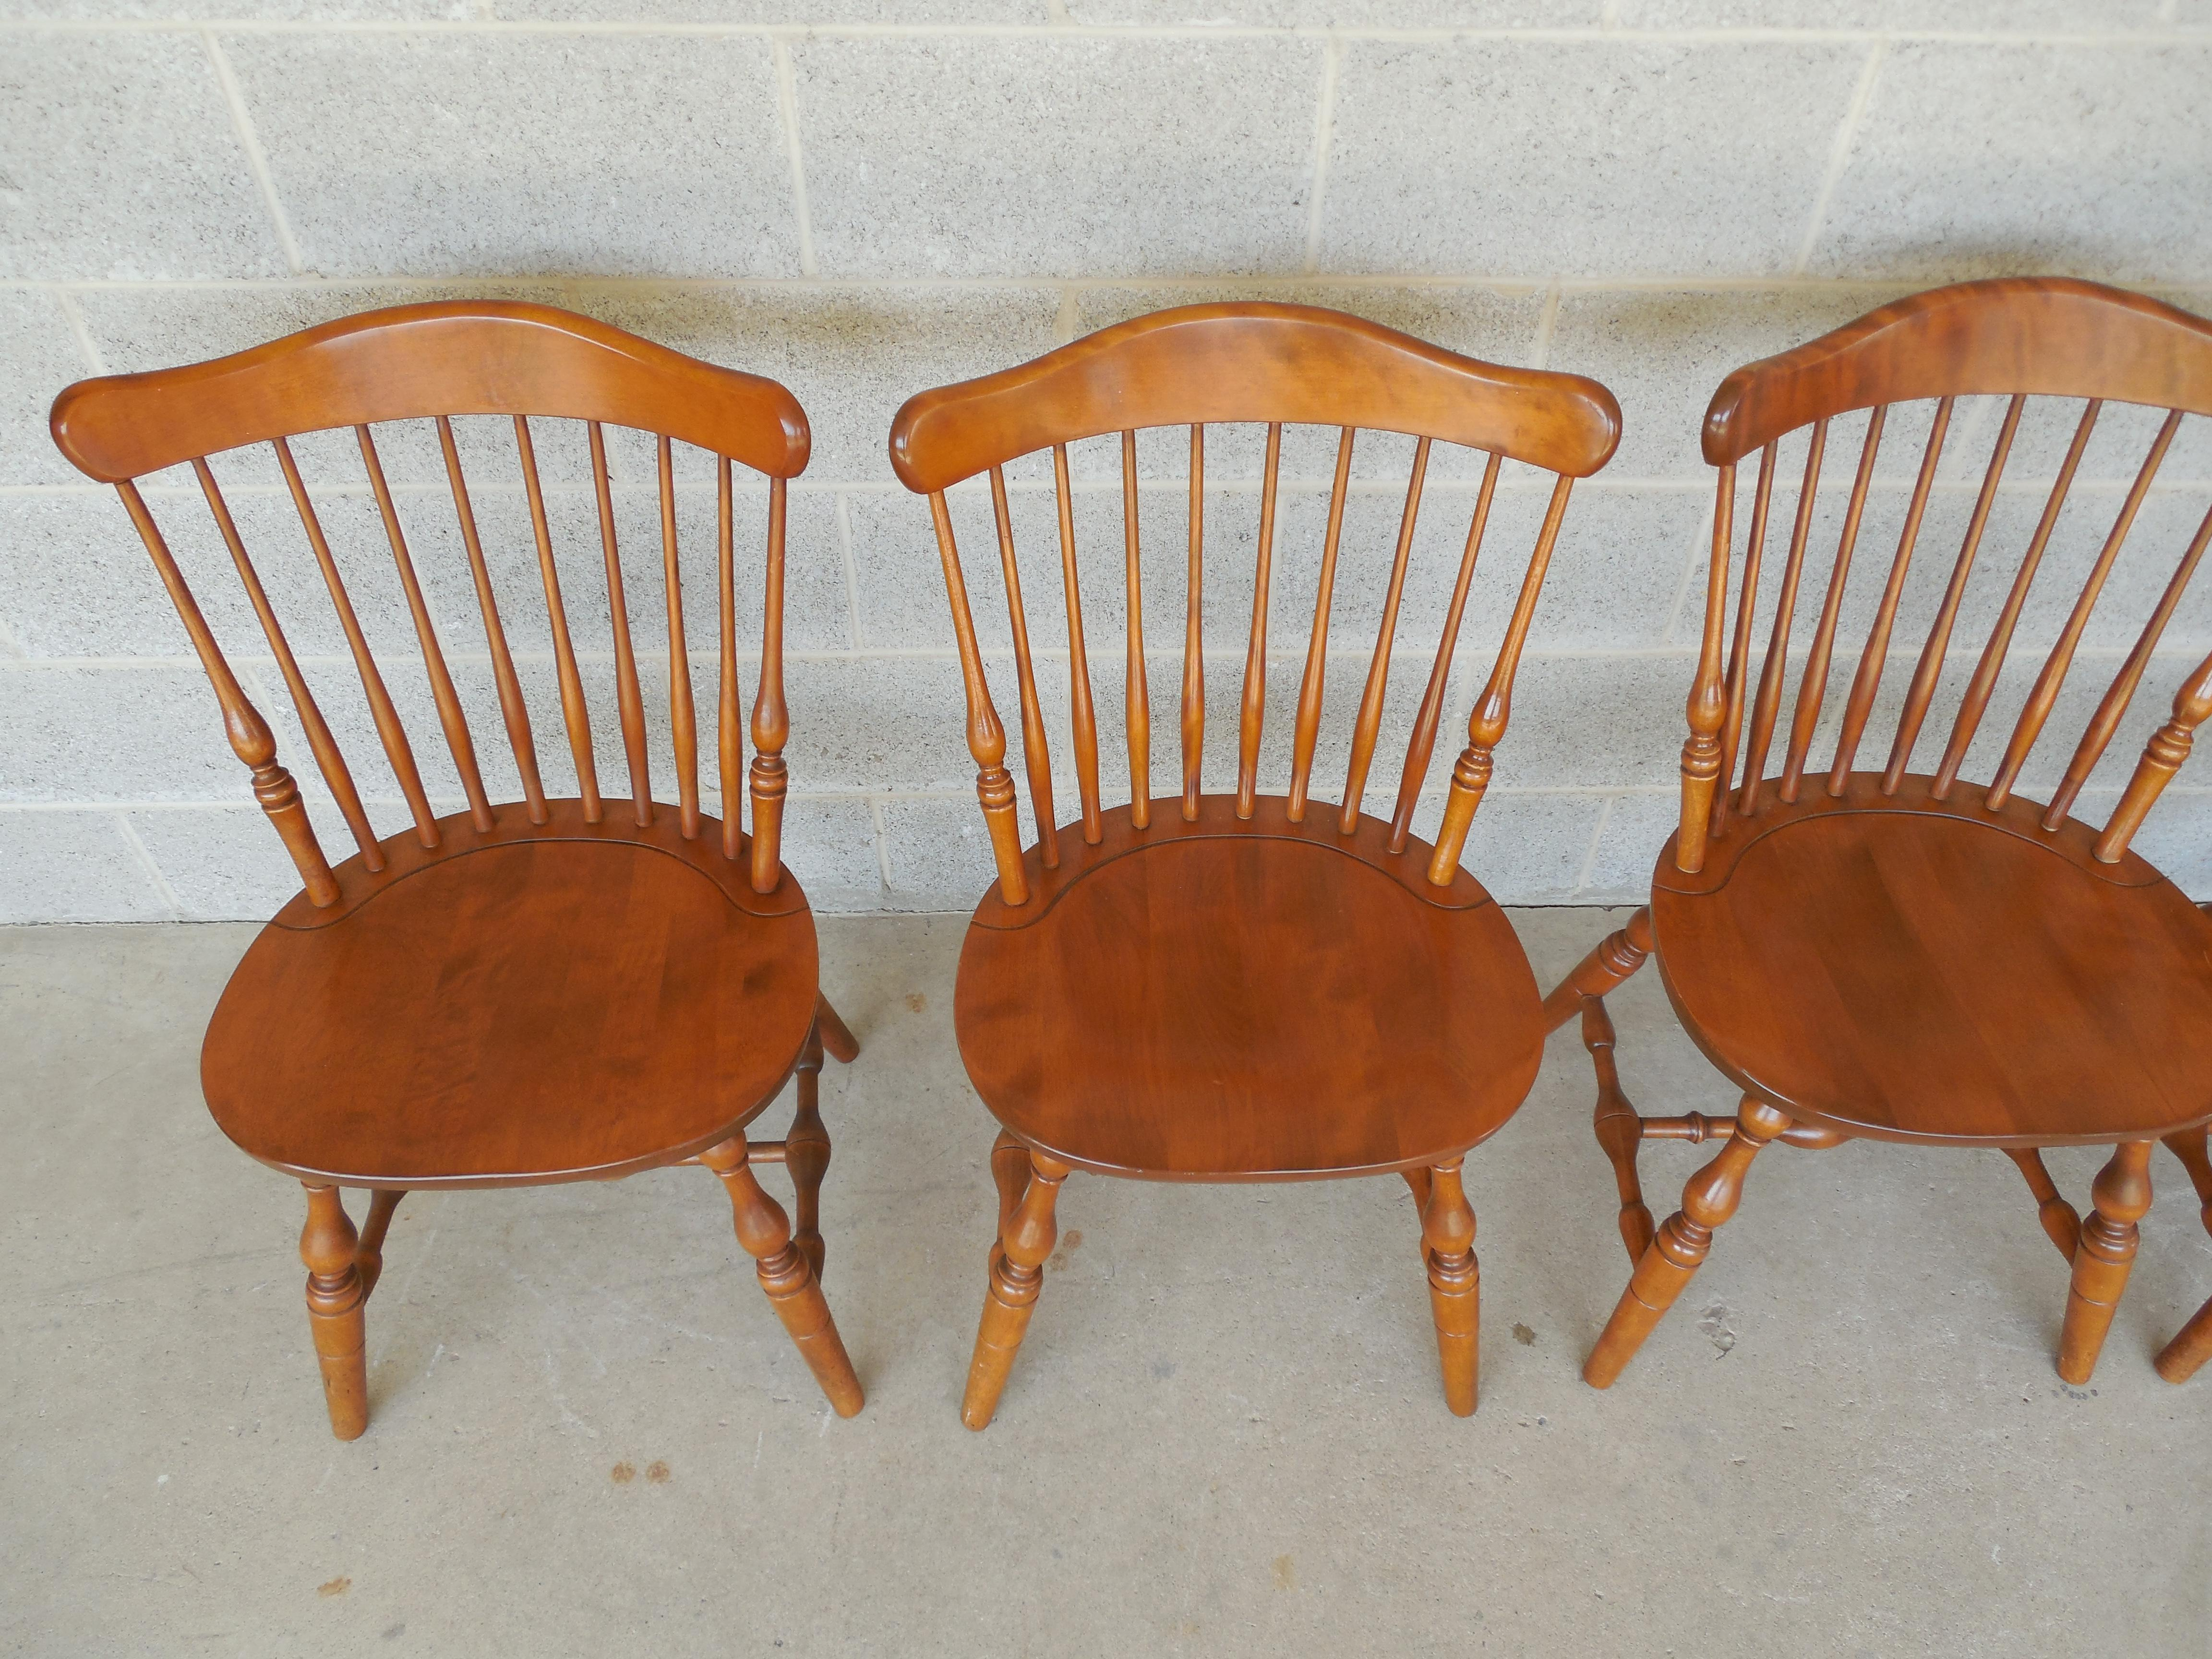 S Bent Bros Set Of 6 Colonial Windsor Fan Back Maple Chairs   Image 3 Of